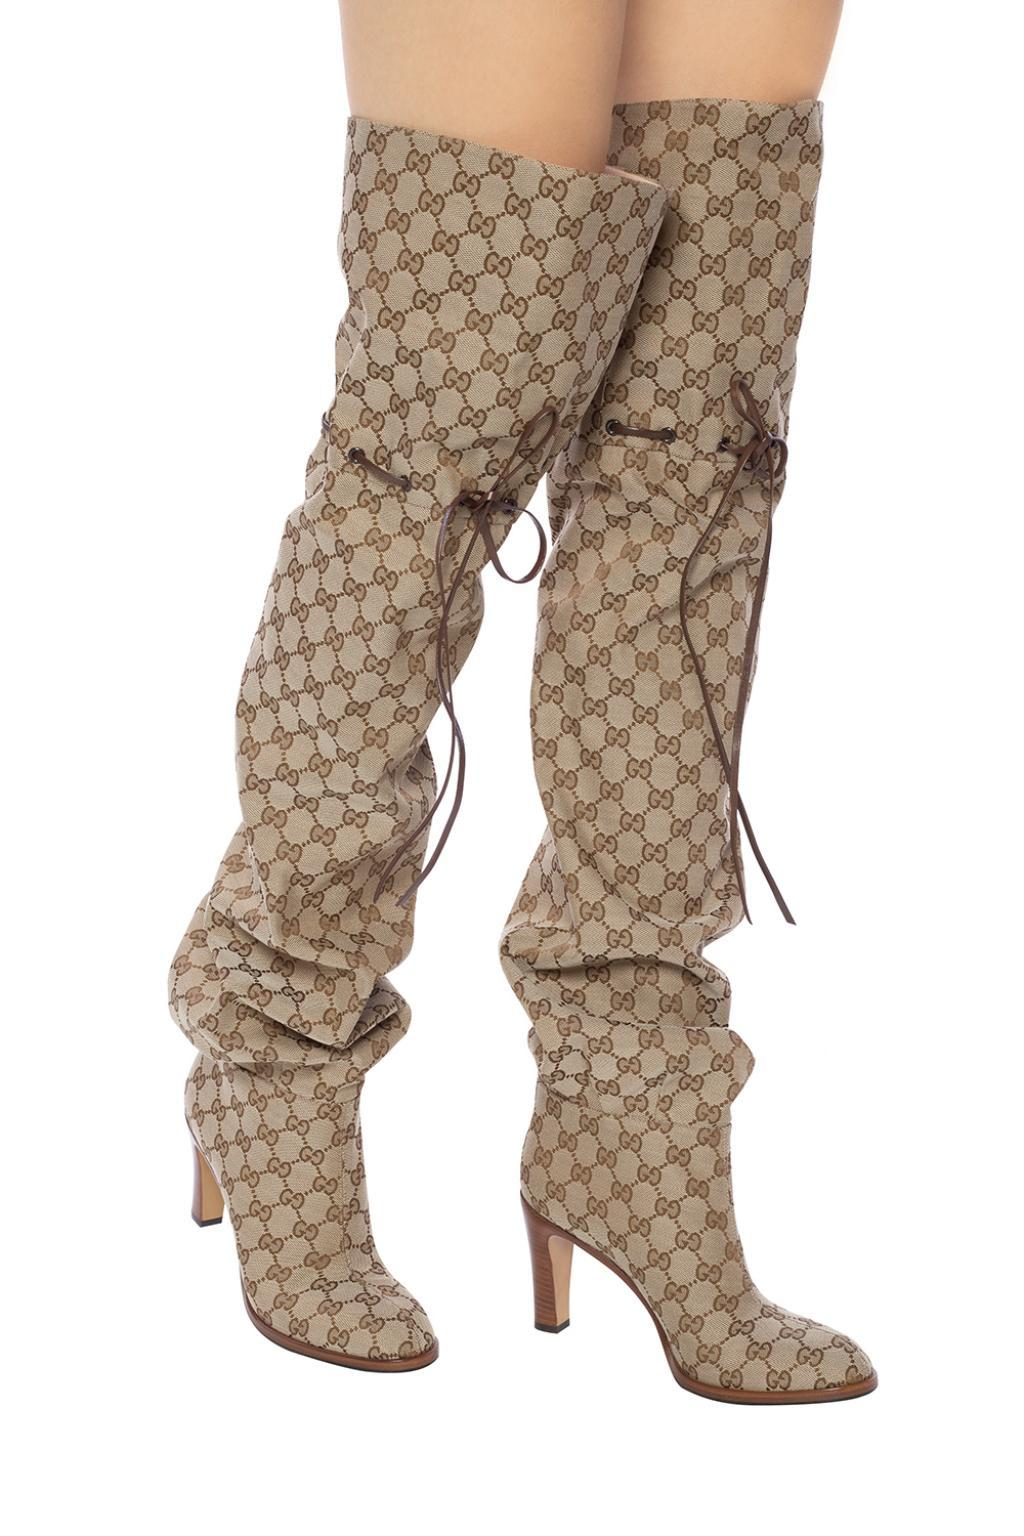 Gucci Leather Heeled Thigh-high Boots